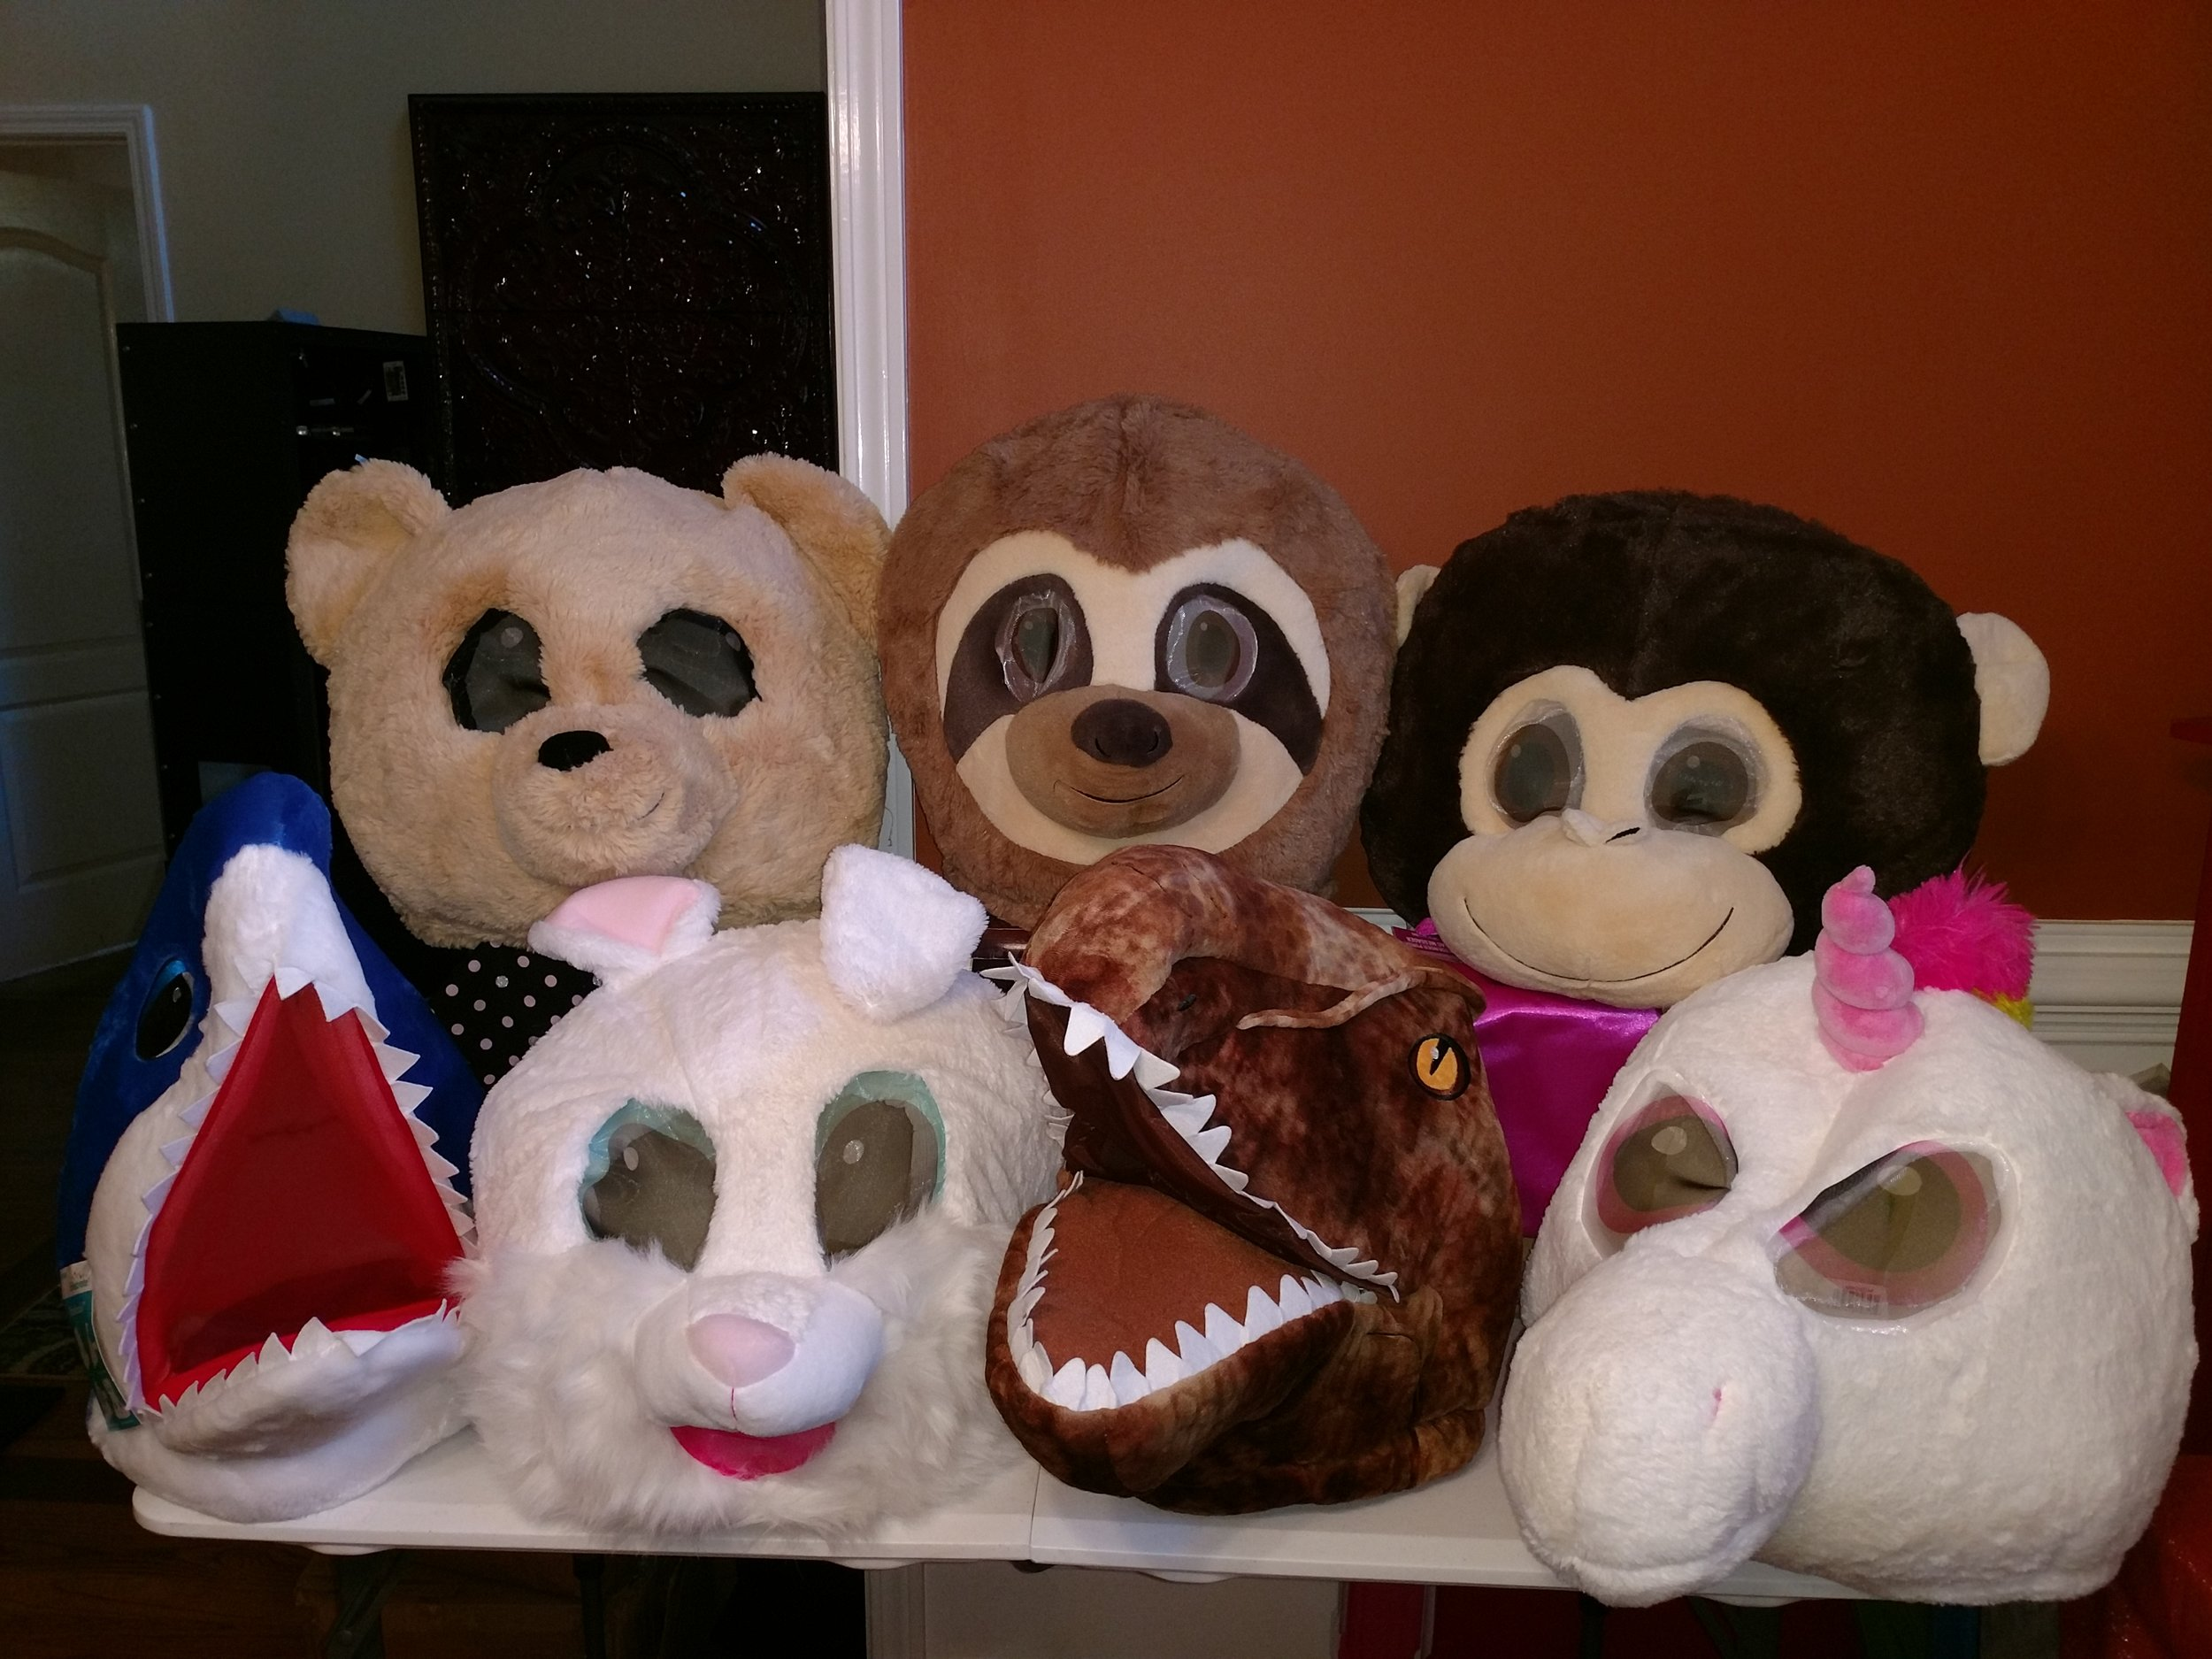 These masks are the new trend at parties. Let us know if you want us to add them to your package.